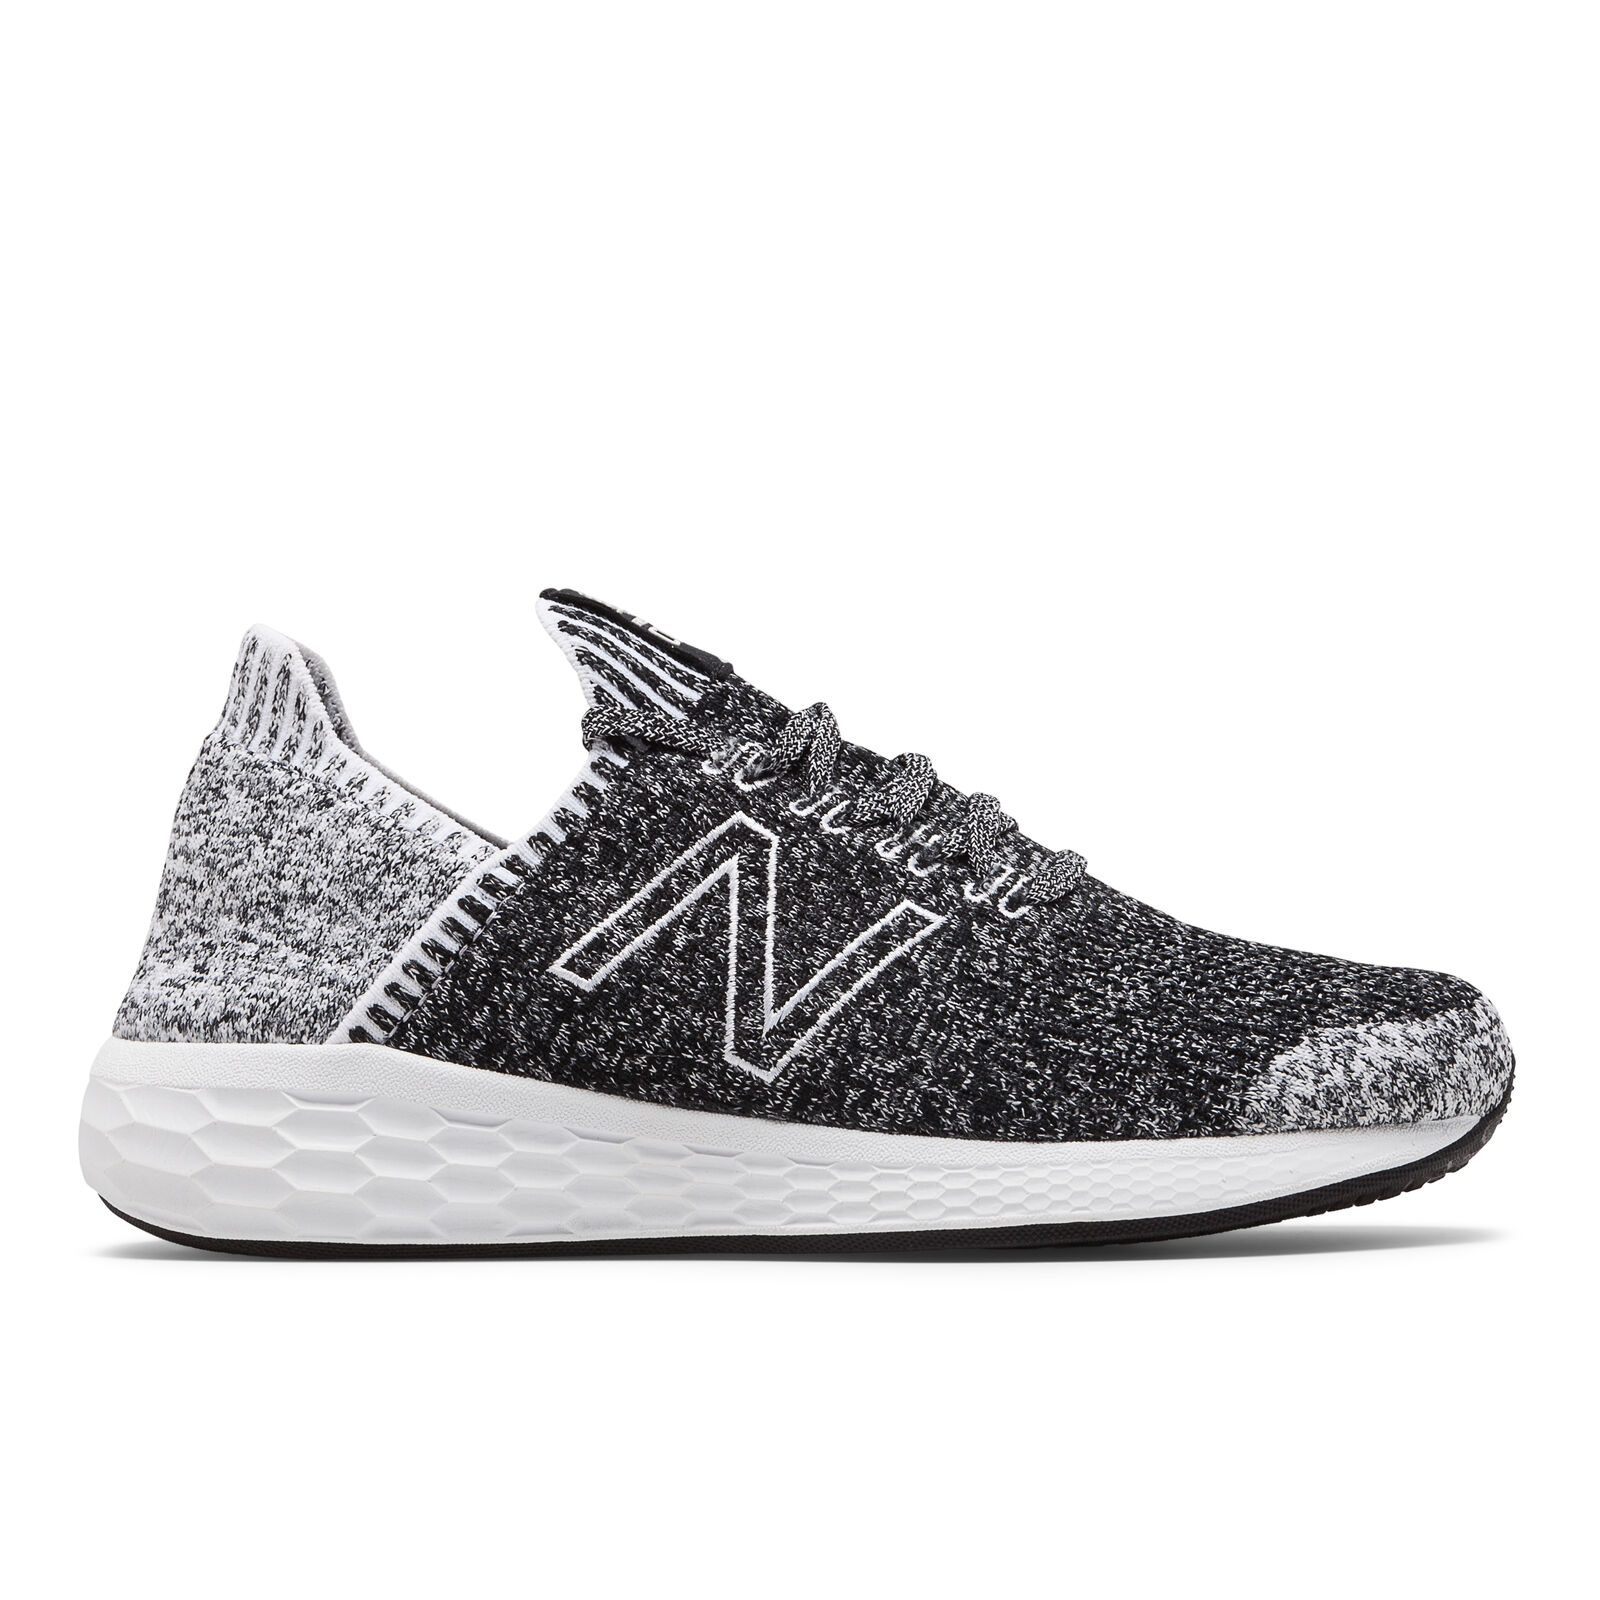 New Balance MCRZSLB2 Cruz v2 Fresh Foam Black White Men's Running shoes